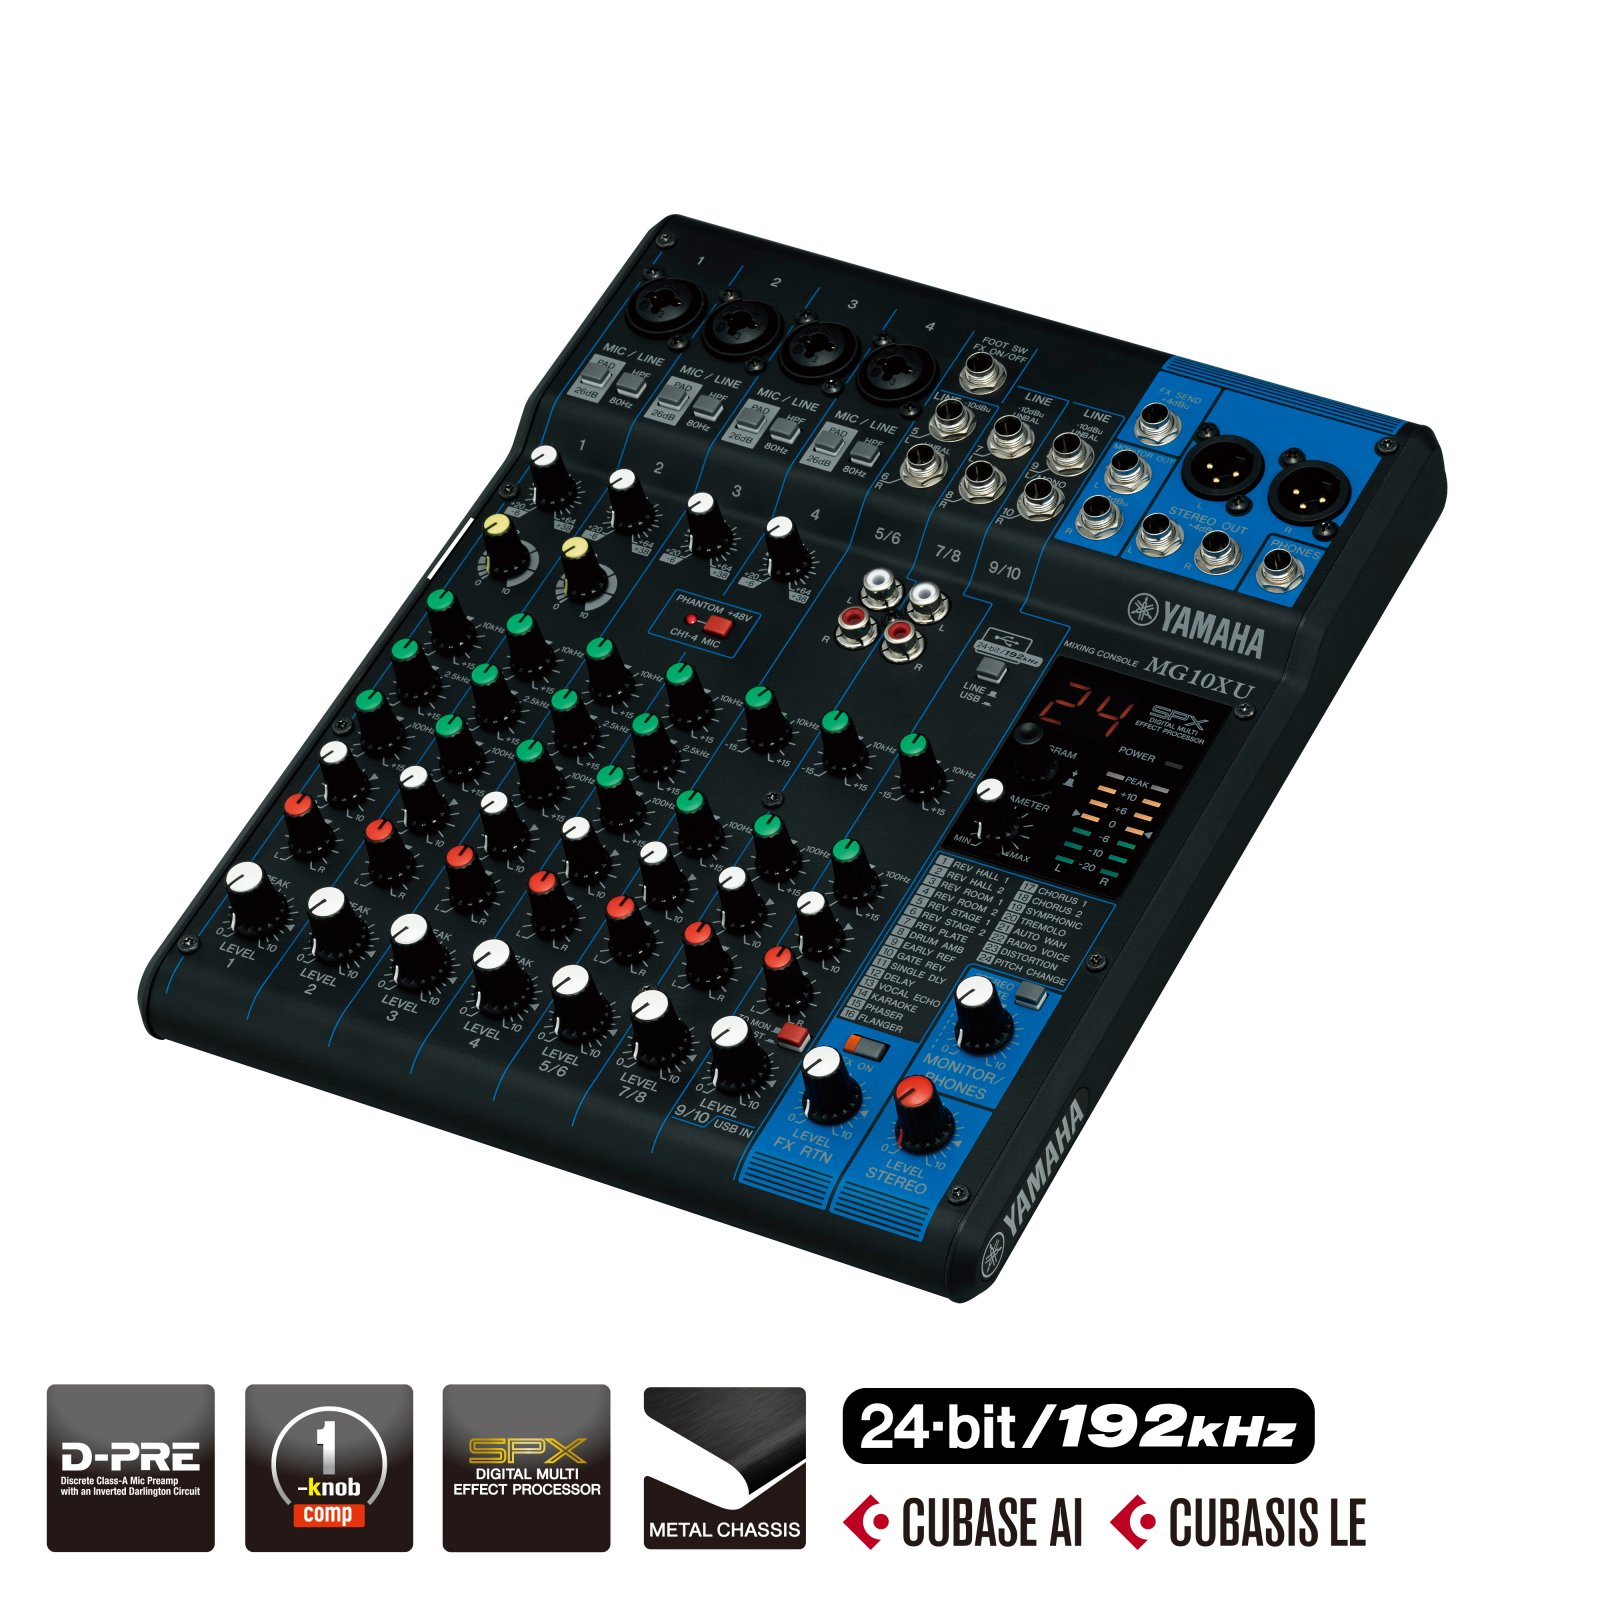 Yamaha MG10XU 10-Input Mixer with Built-In FX & 2-In/2-Out USB Interface